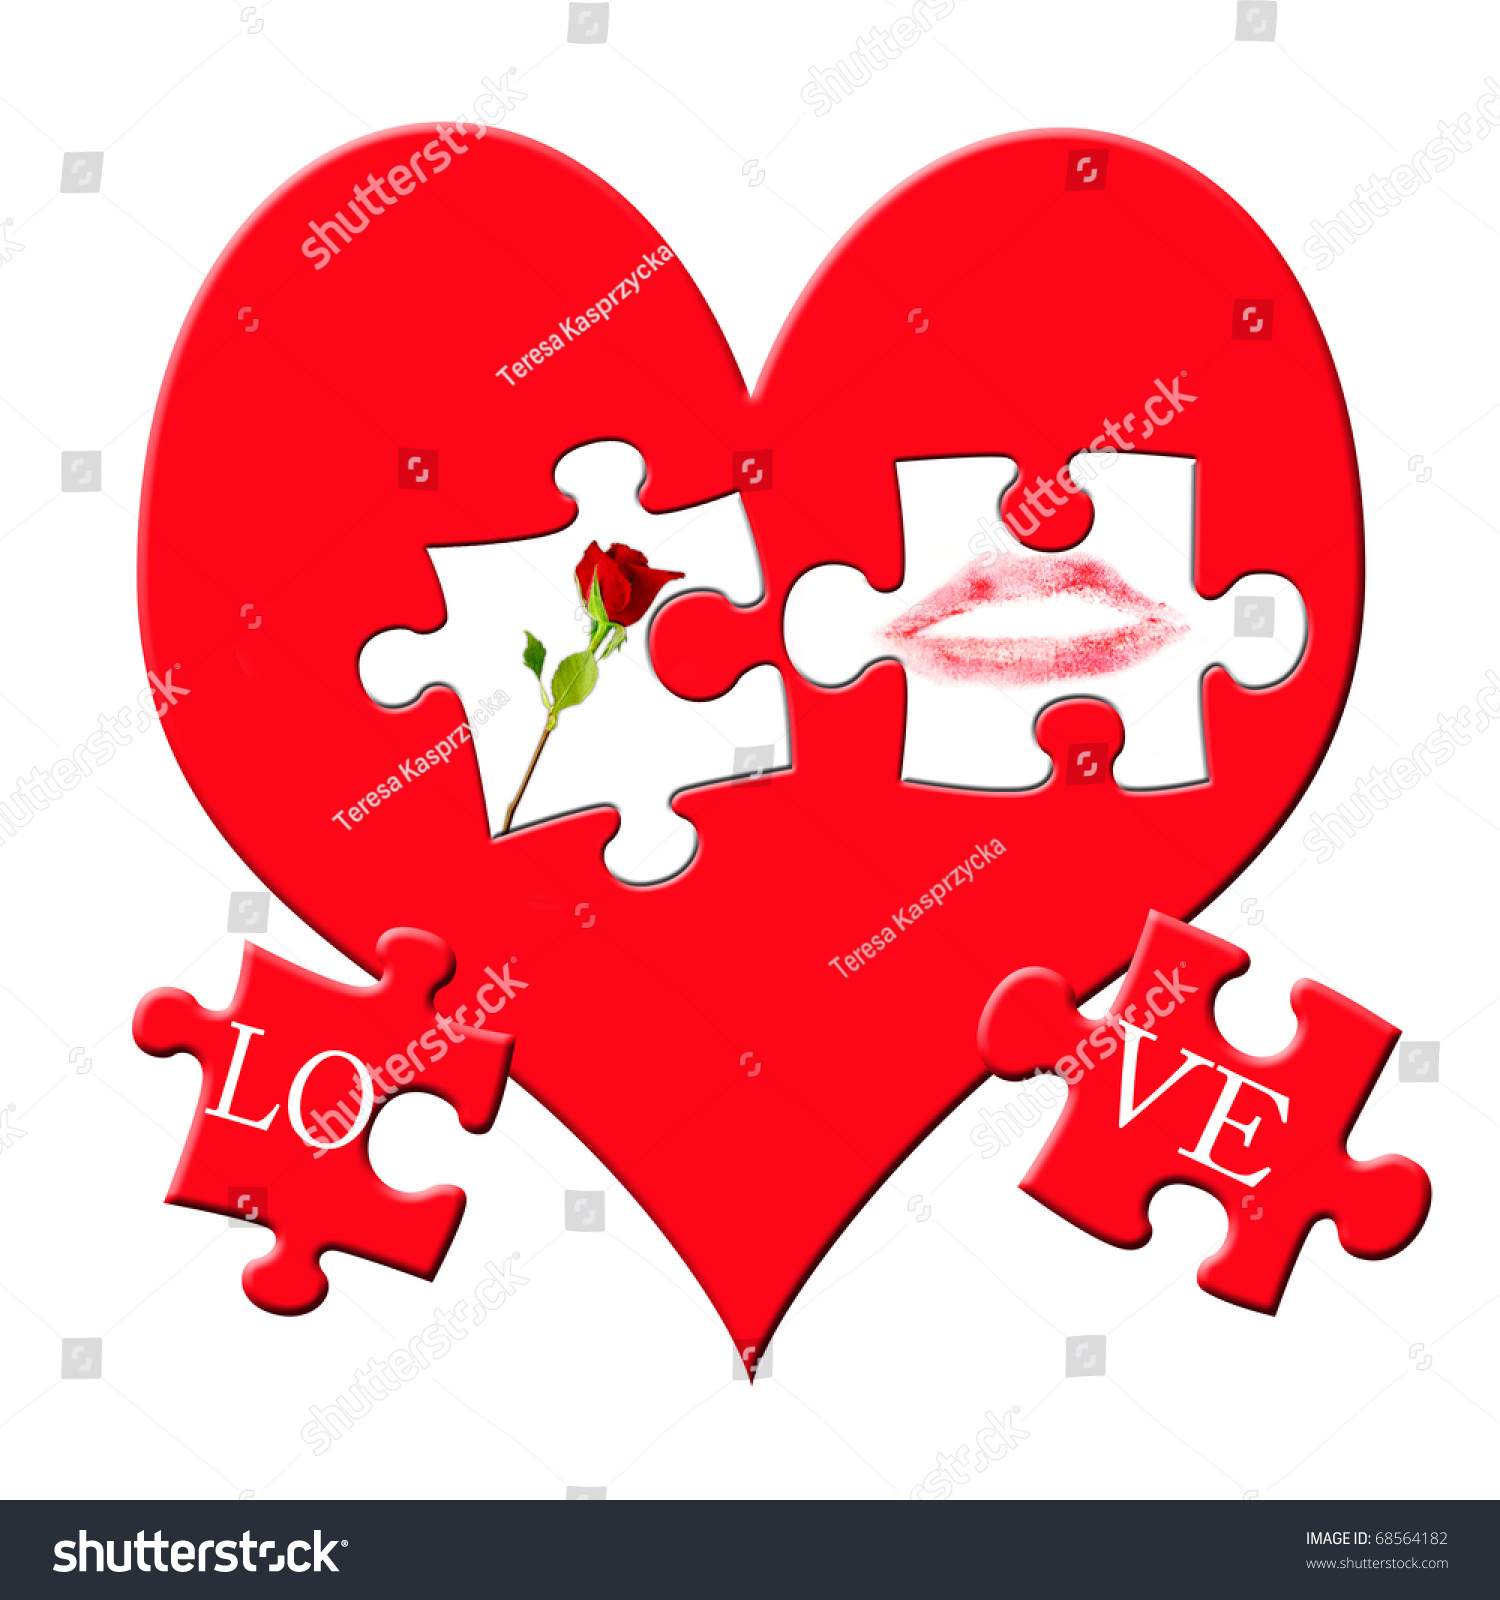 Valentines puzzle love symbols on big stock illustration 68564182 valentines puzzle with love symbols on big red heart isolated on white buycottarizona Gallery